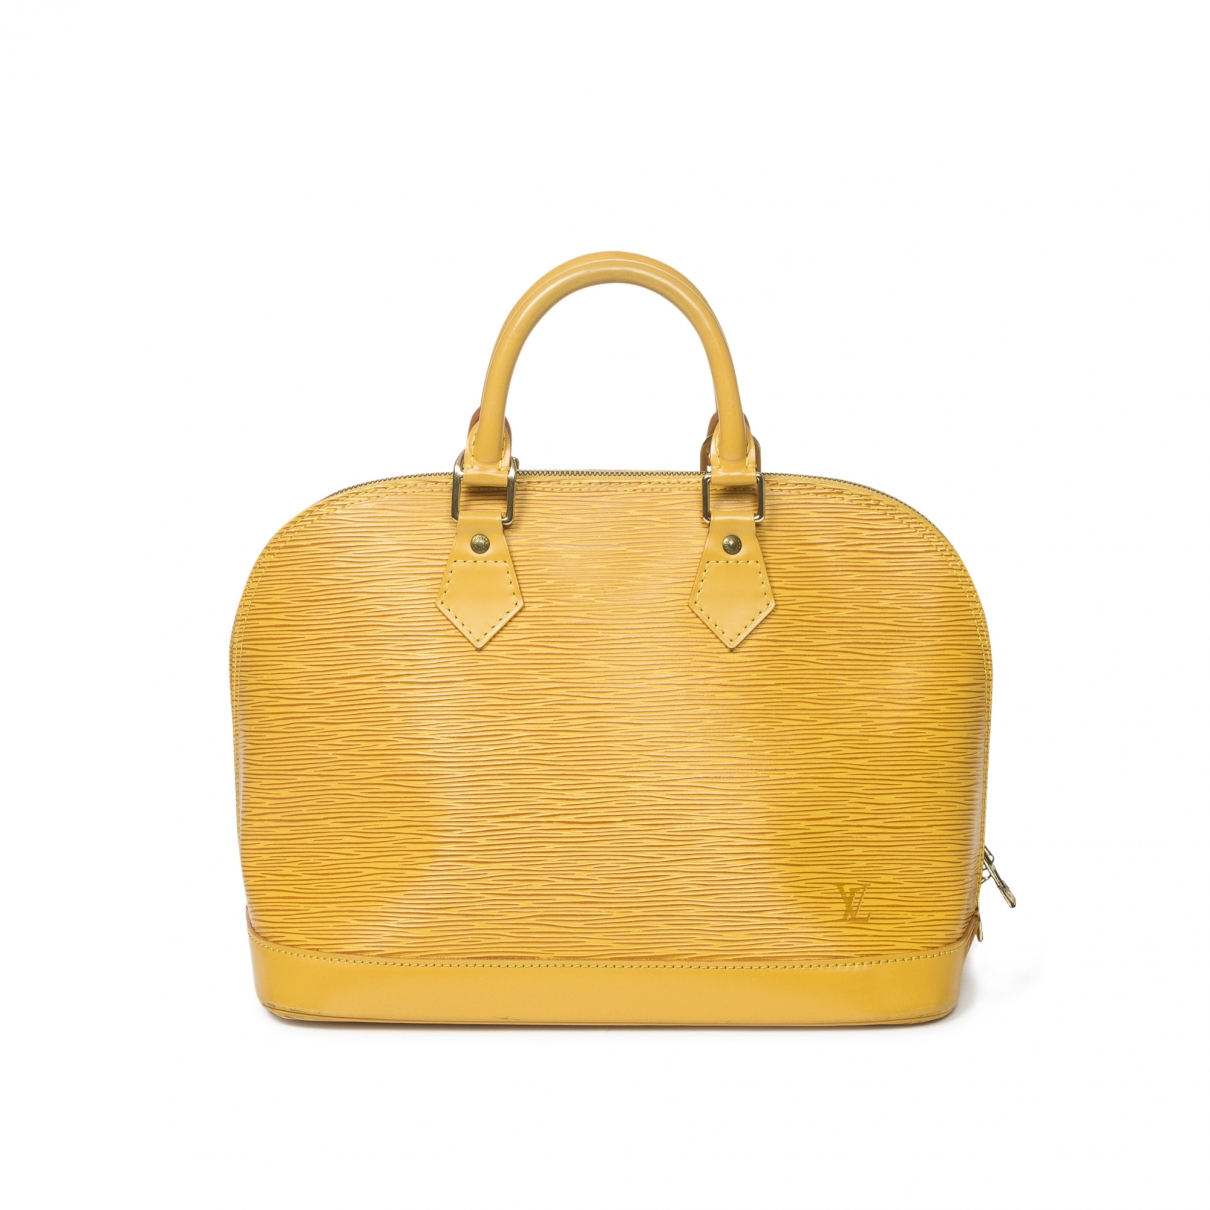 Louis Vuitton Alma Yellow Leather handbag for Women \N